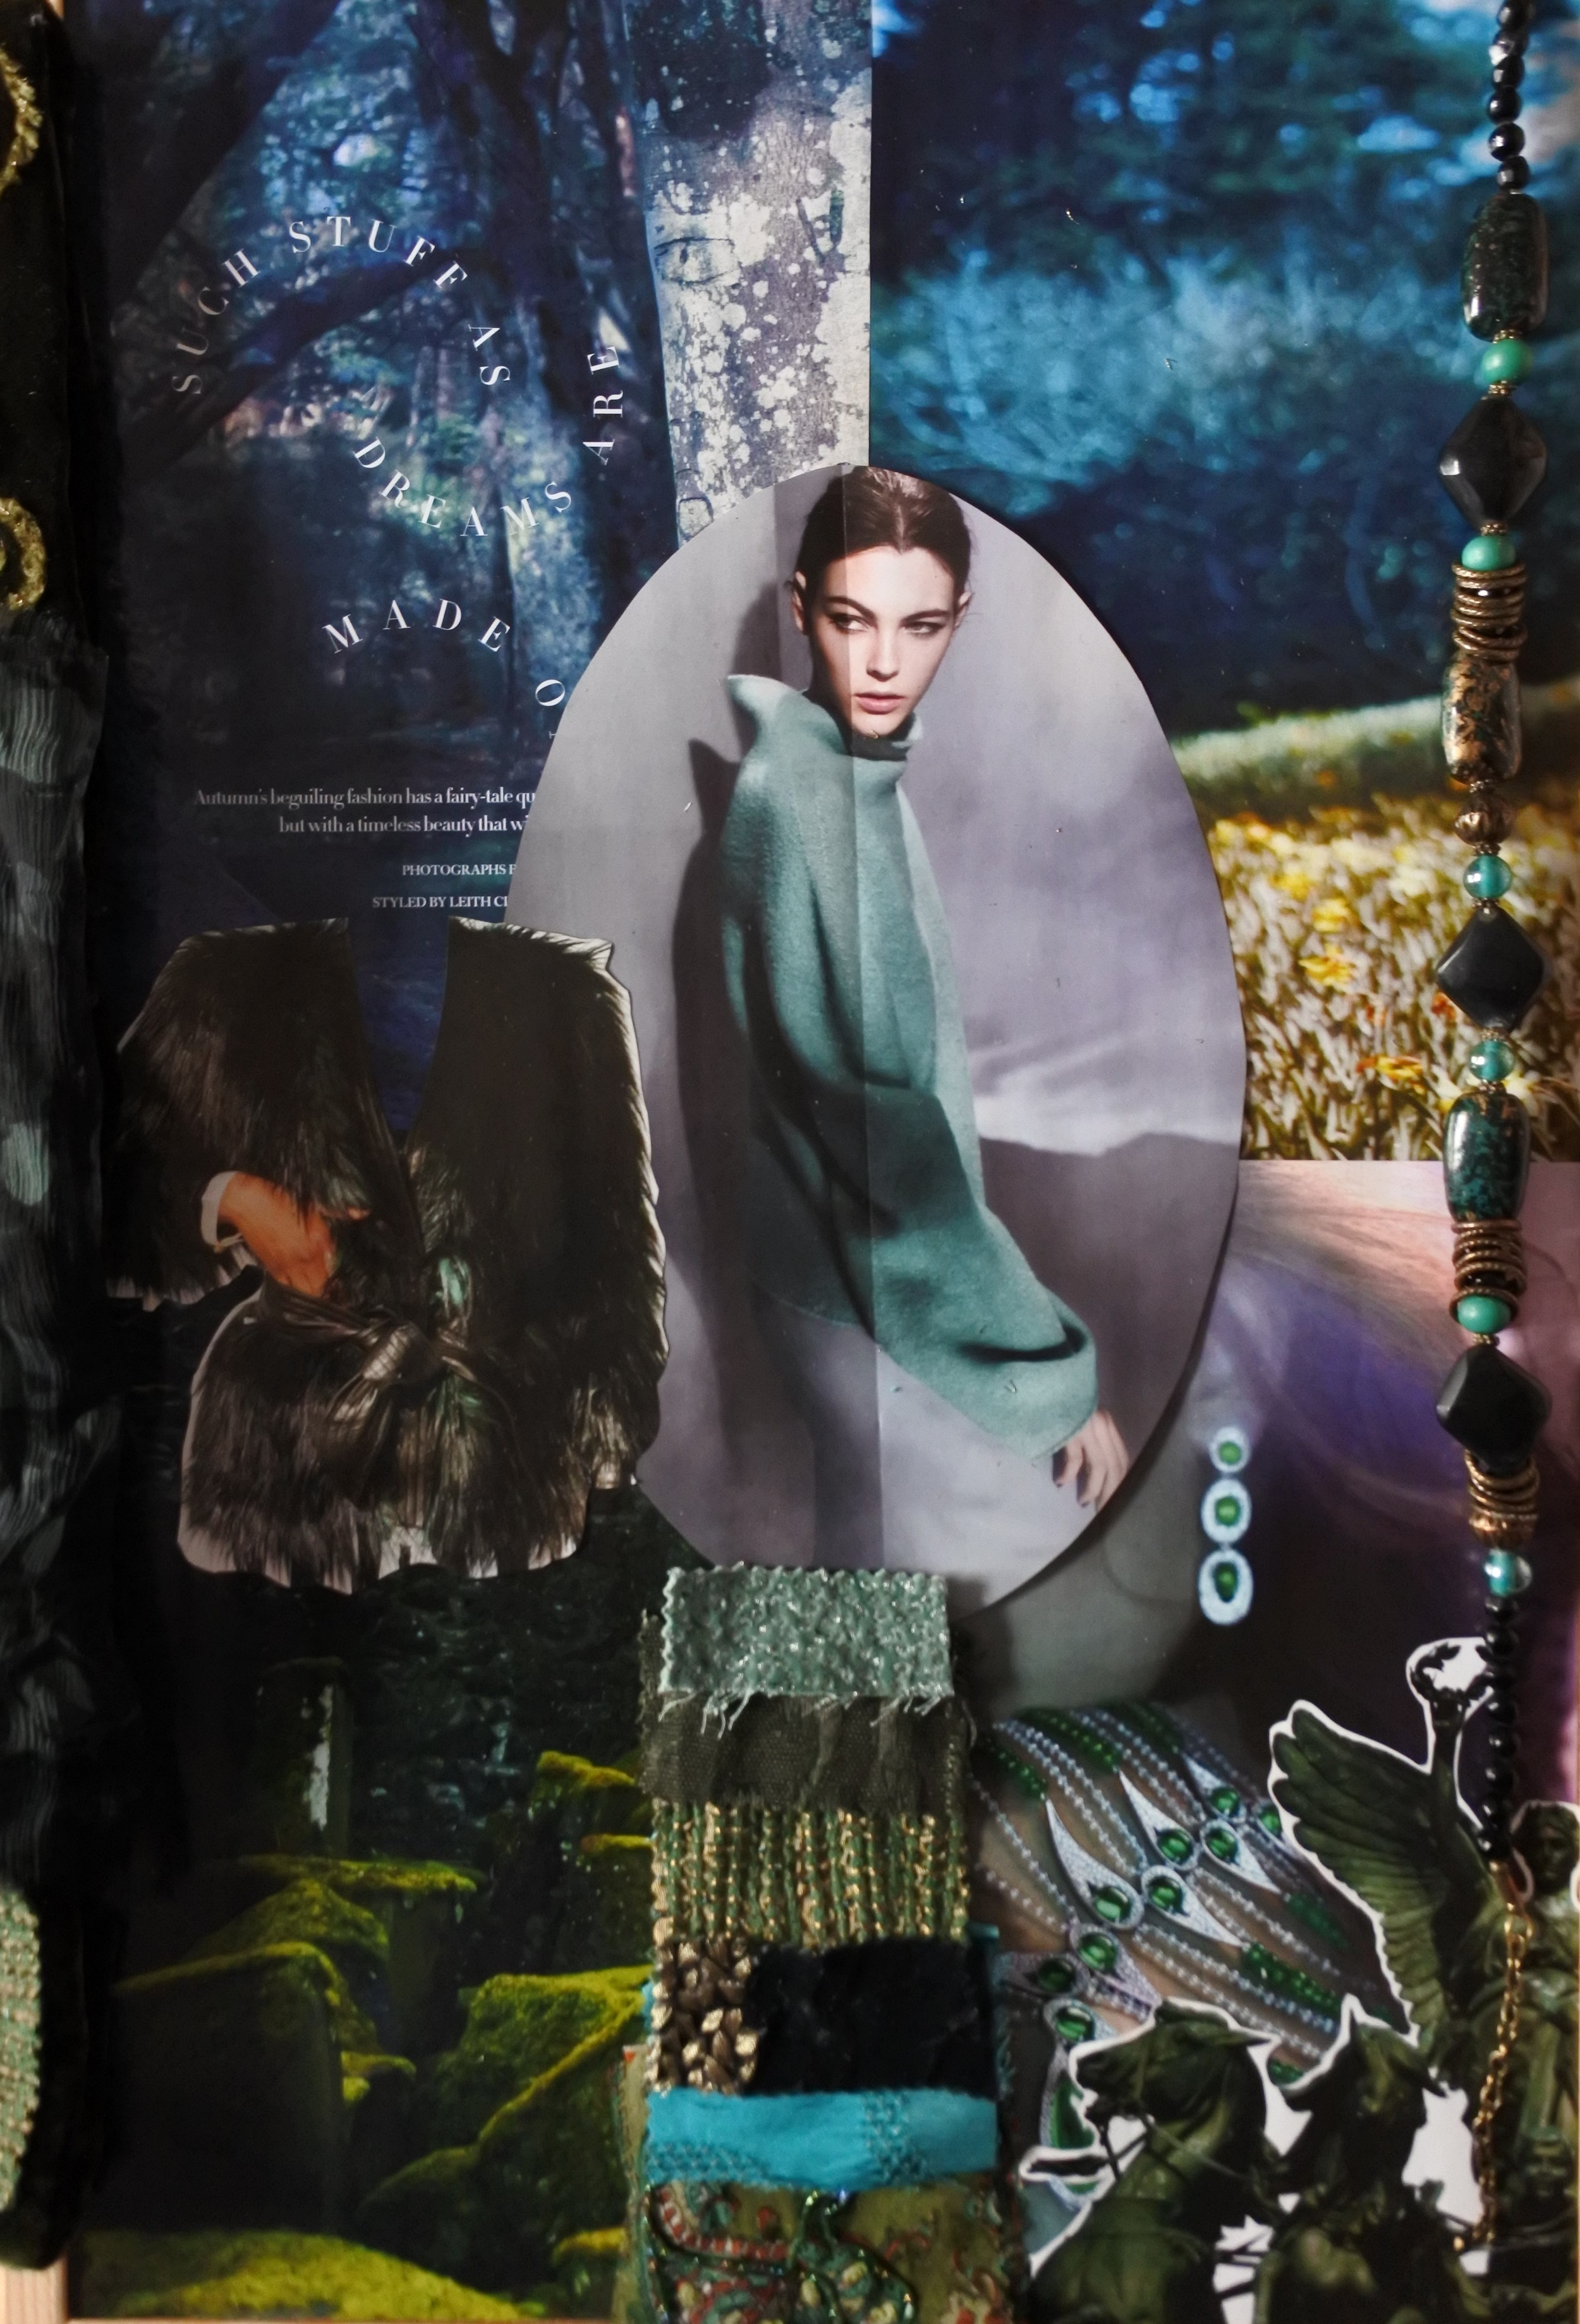 Mood boardfor Dress design 2 'Game of Thrones/Narnia' inspired.